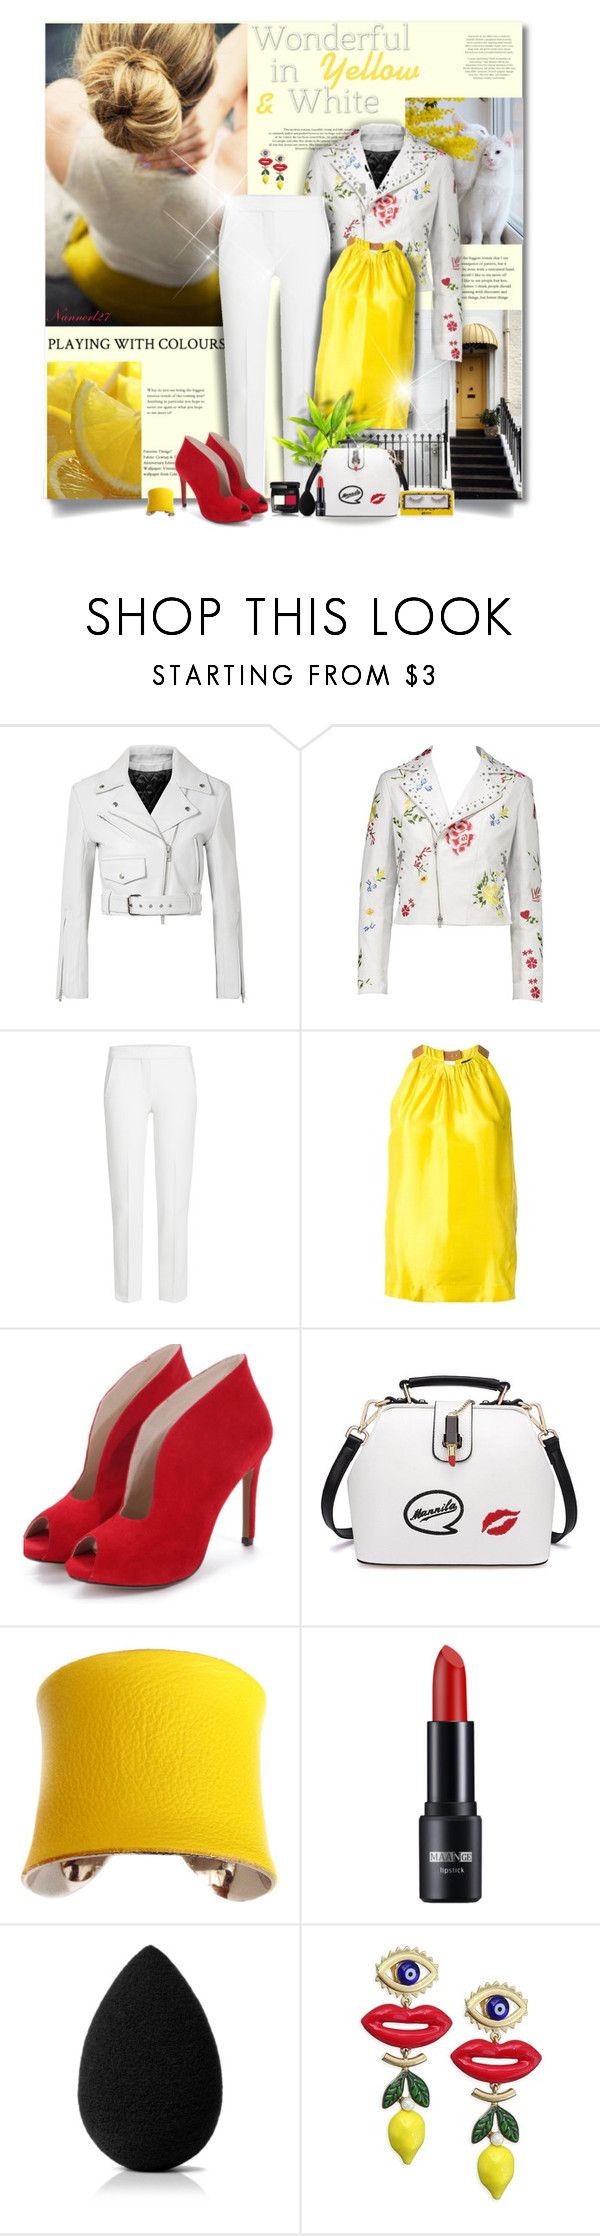 """""""Wonderful in Yellow & White..."""" by nannerl27forever on Polyvore featuring Poesia, Calvin Klein 205W39NYC, MaxMara, Erika Cavallini Semi-Couture, UNEARTHED, beautyblender and Tory Burch"""